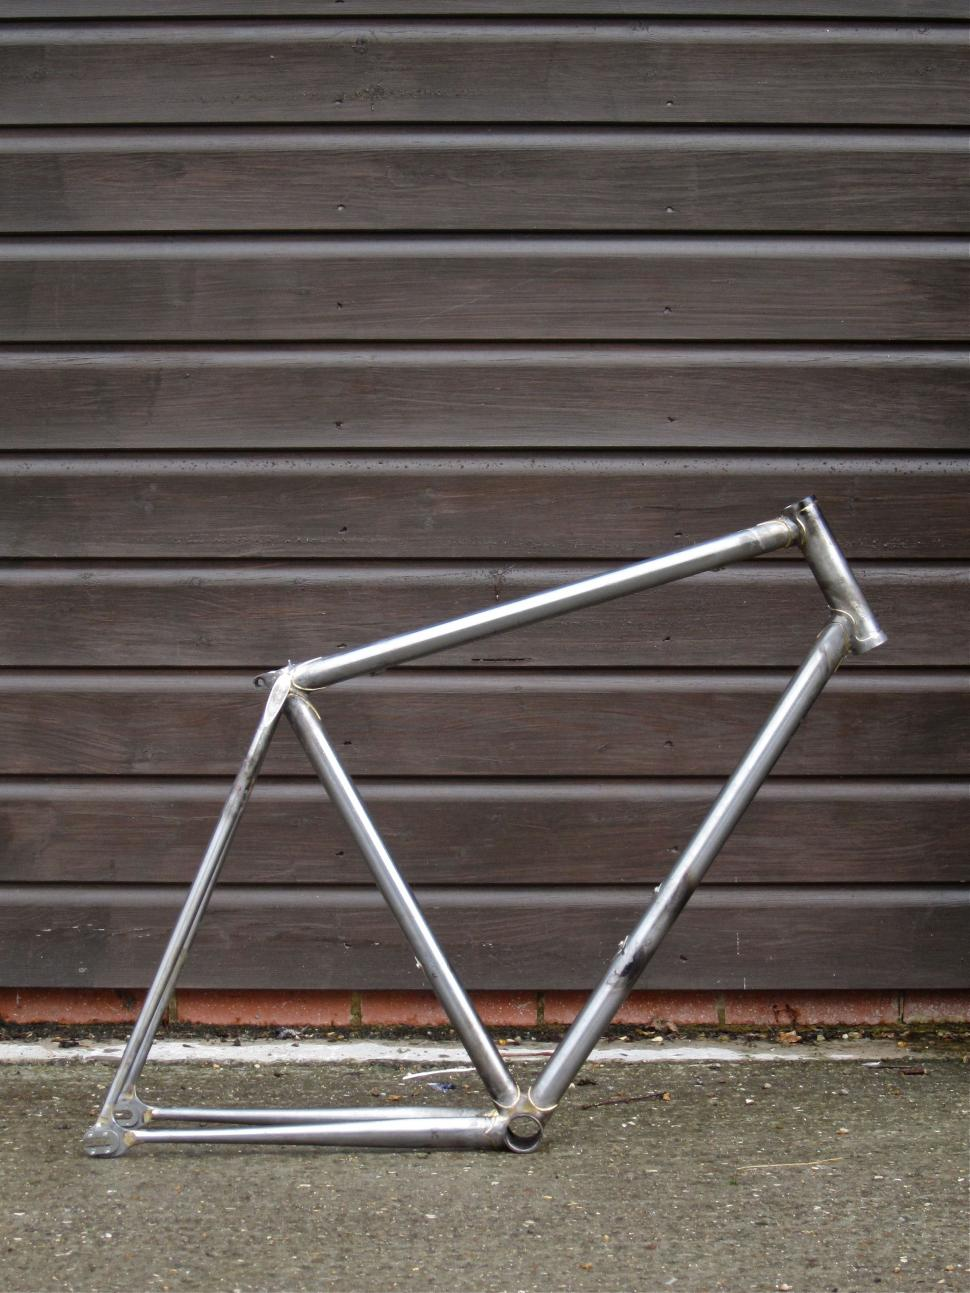 DownlandCycles4-FinishedFrame.jpg